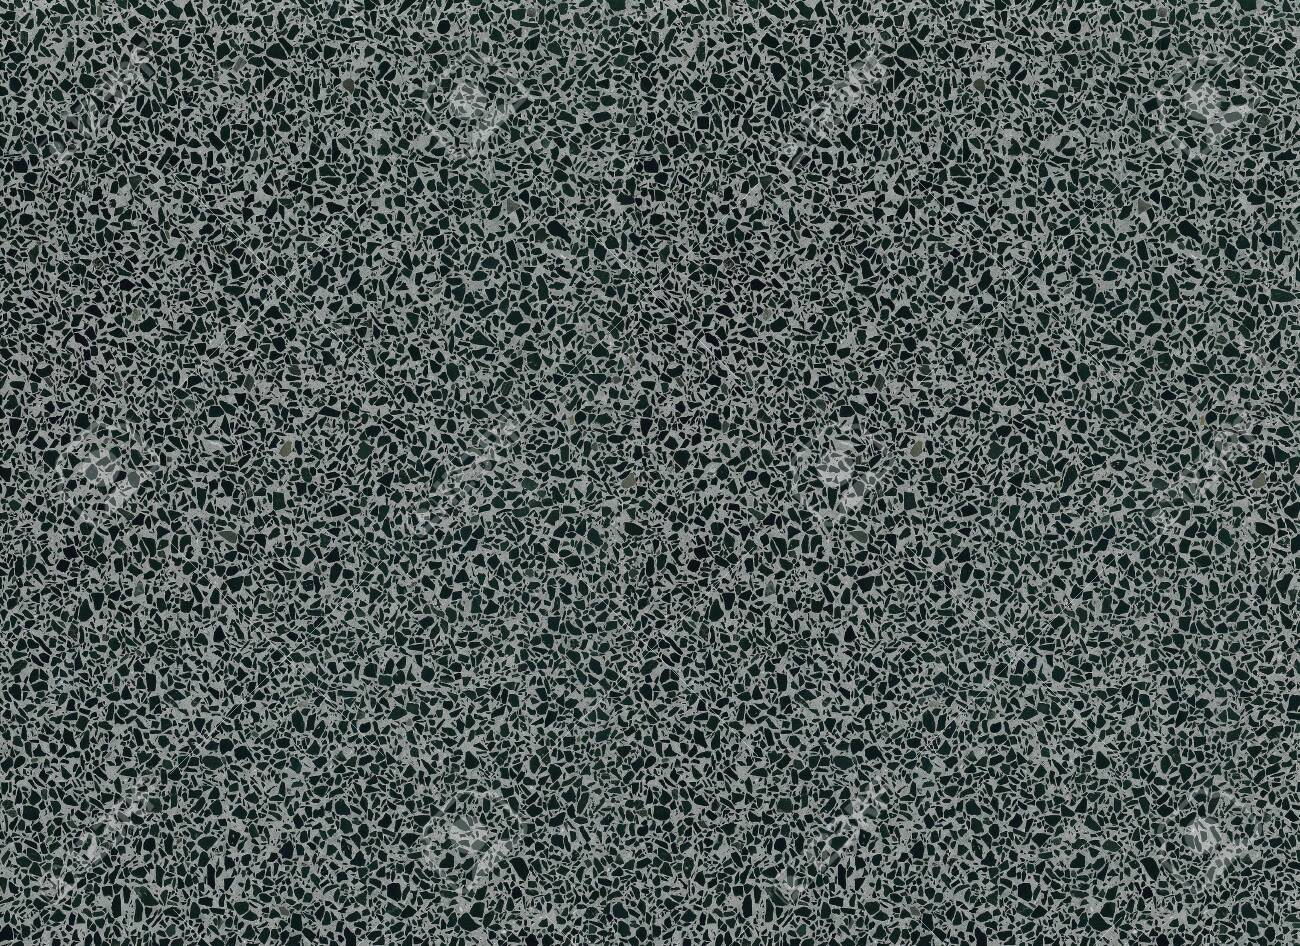 Black And Grey Mottled Terrazzo Floor Tile Surface Texture Background